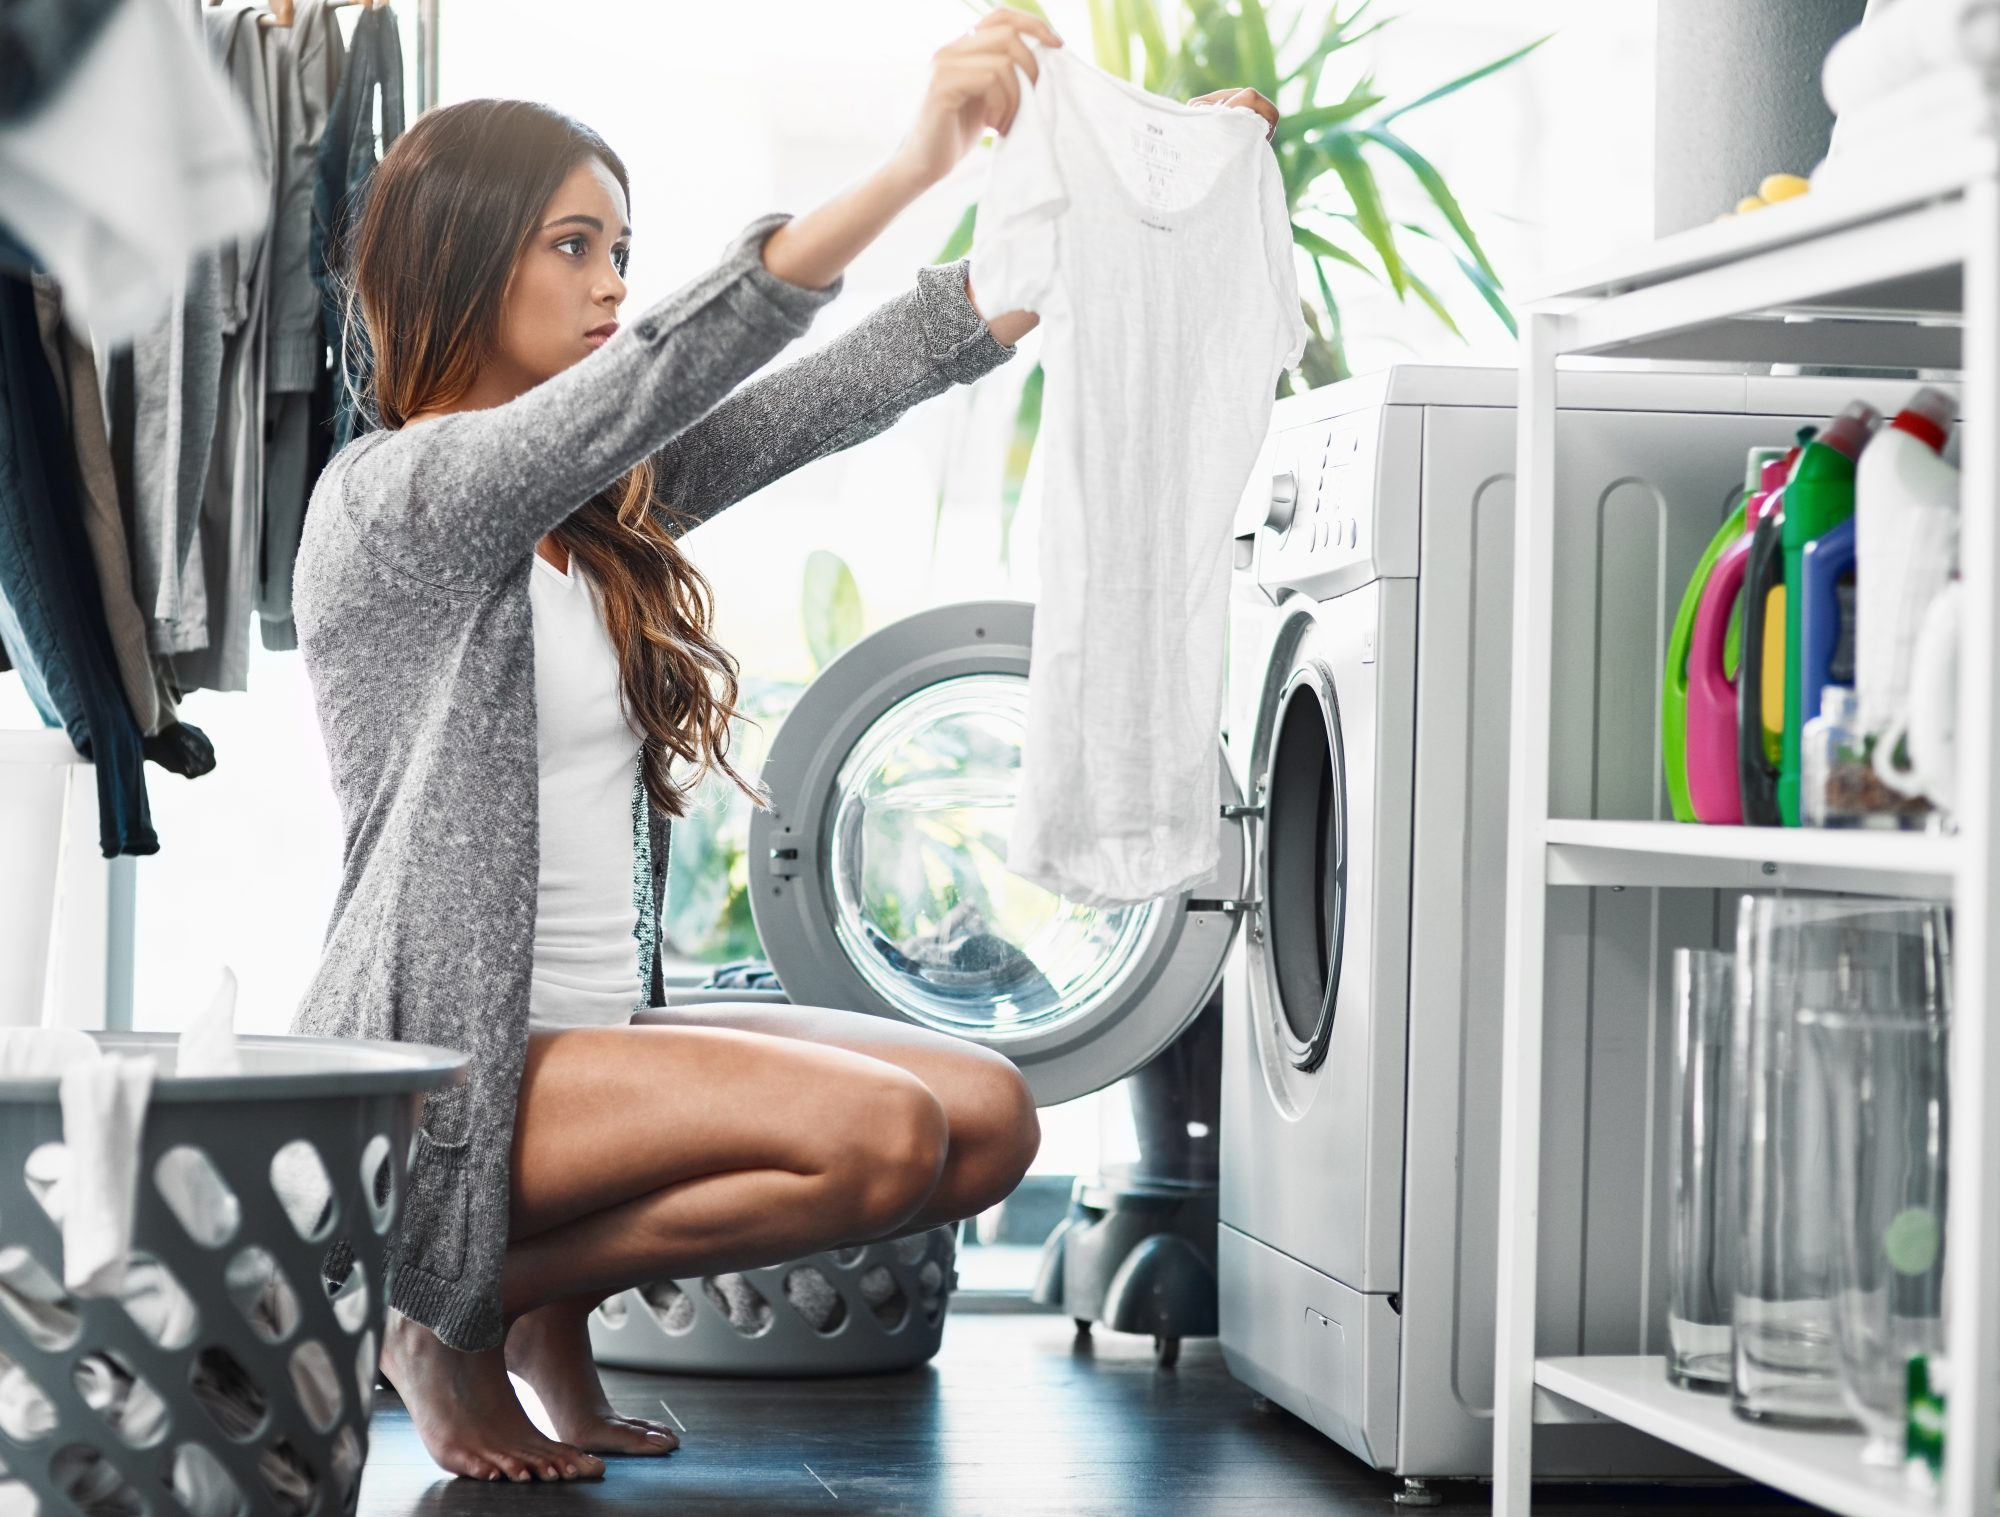 Woman Doing Laundry White Shirt